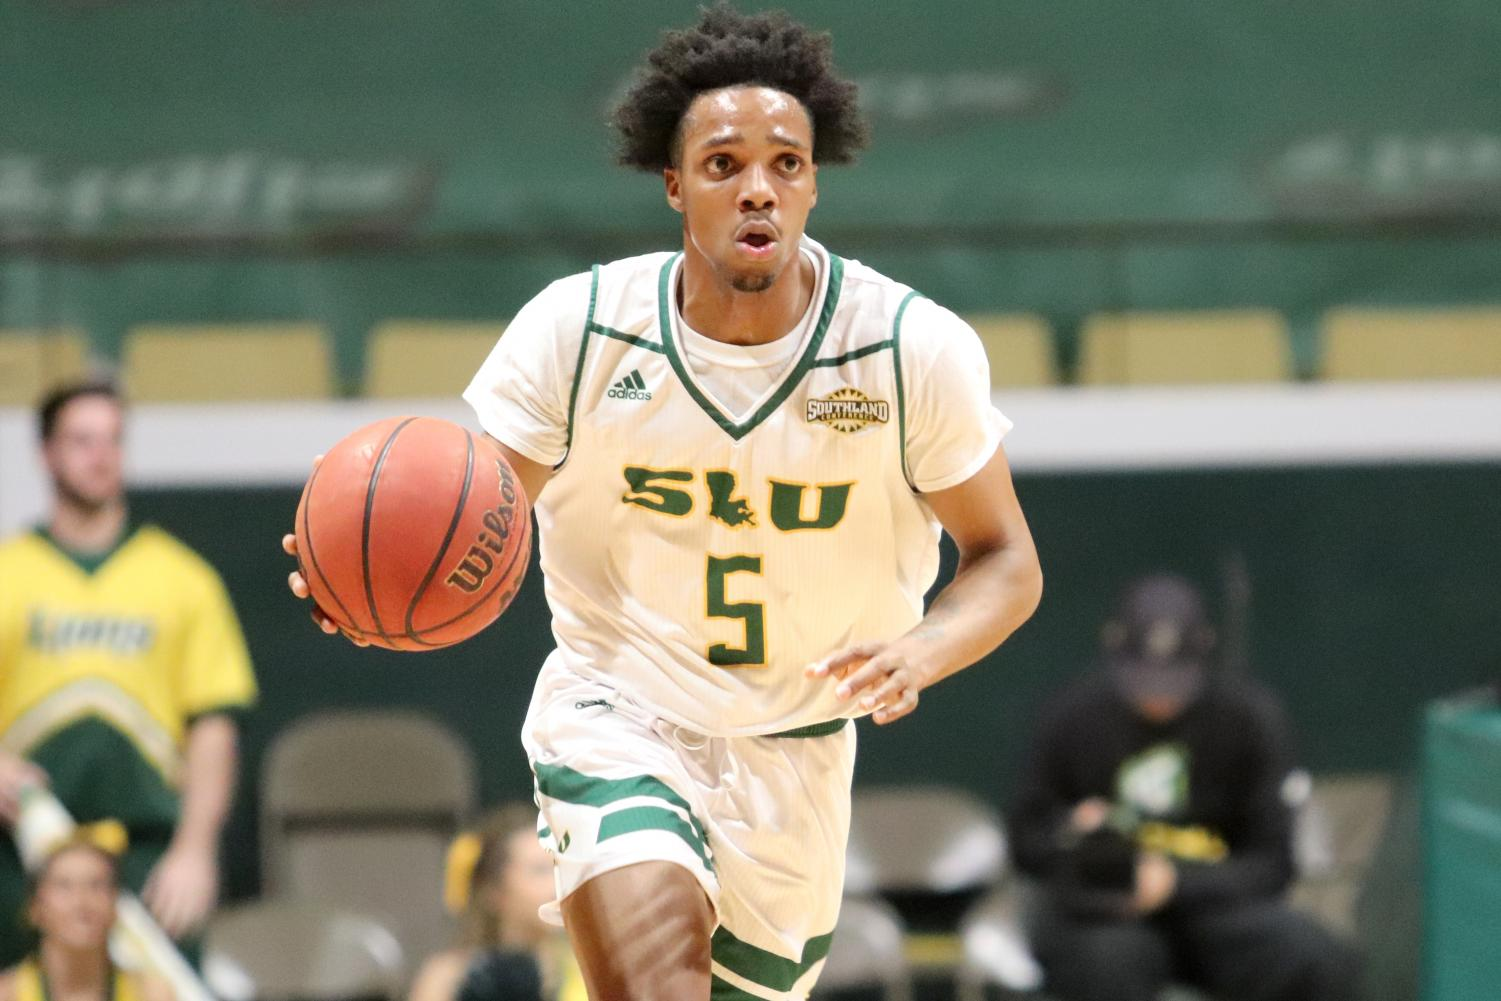 Freshman guard Byron Smith brings the ball down court during their game against Grambling State University. Smith finished the game with four points, one steal and two rebounds. With Friday's 79-74 win, the Lions sit at a 3-6 record.